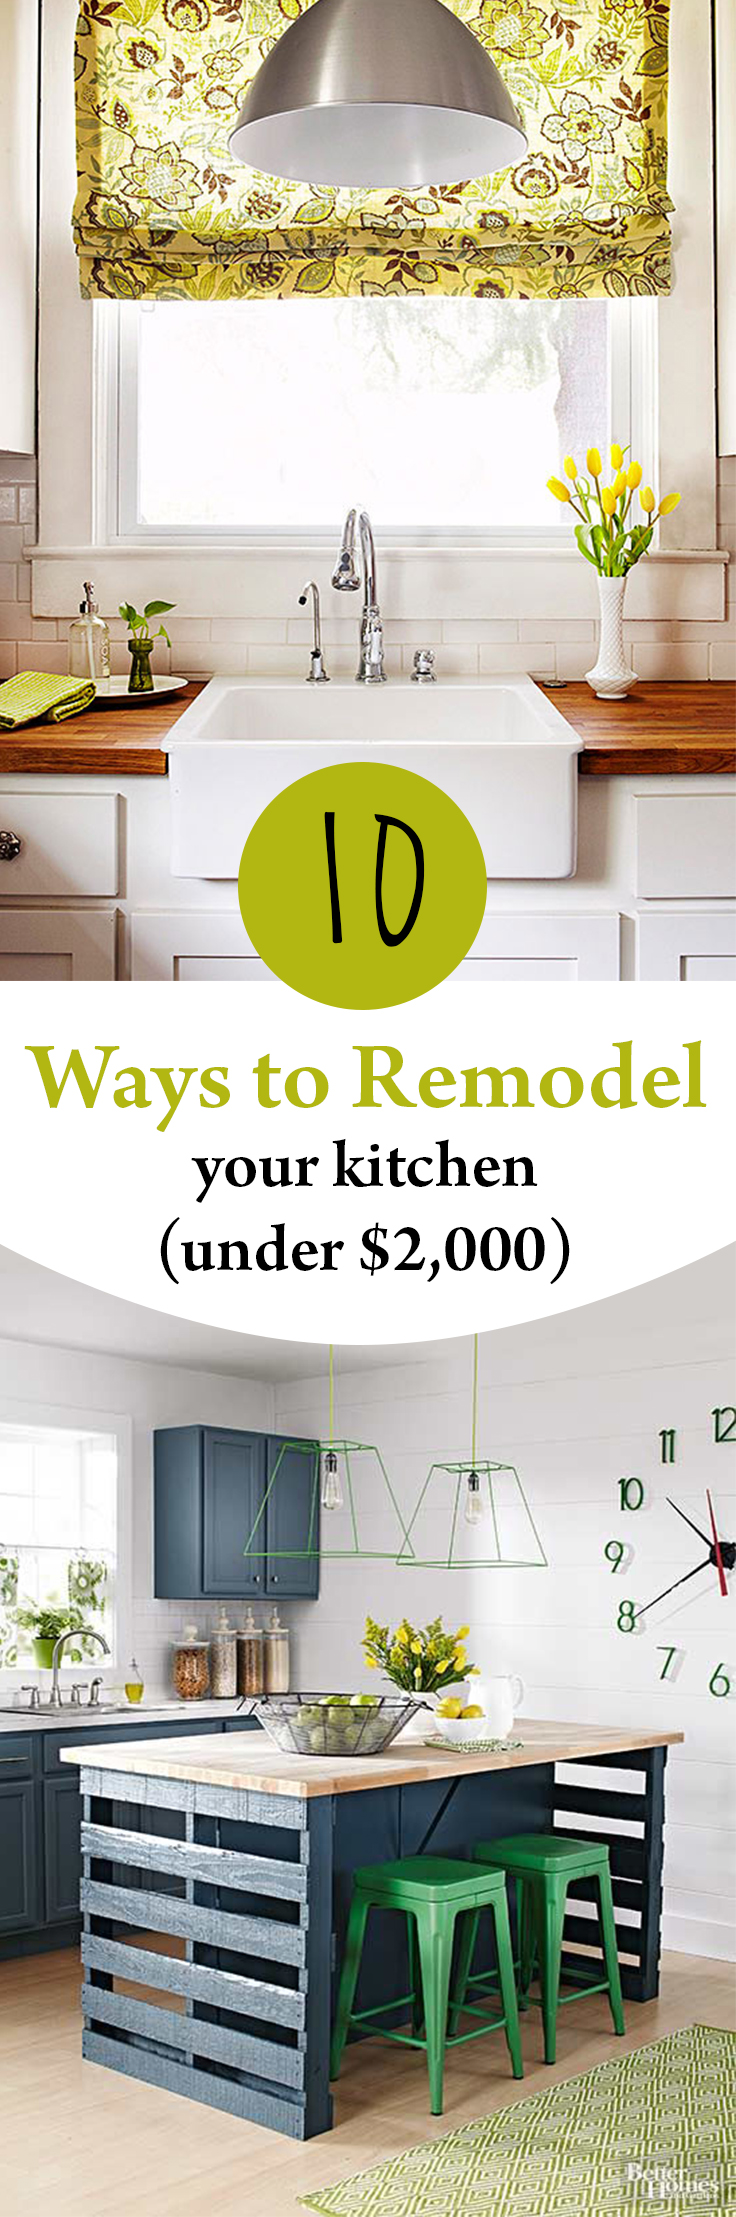 Kitchen Remodel Remodeling Diy Tips